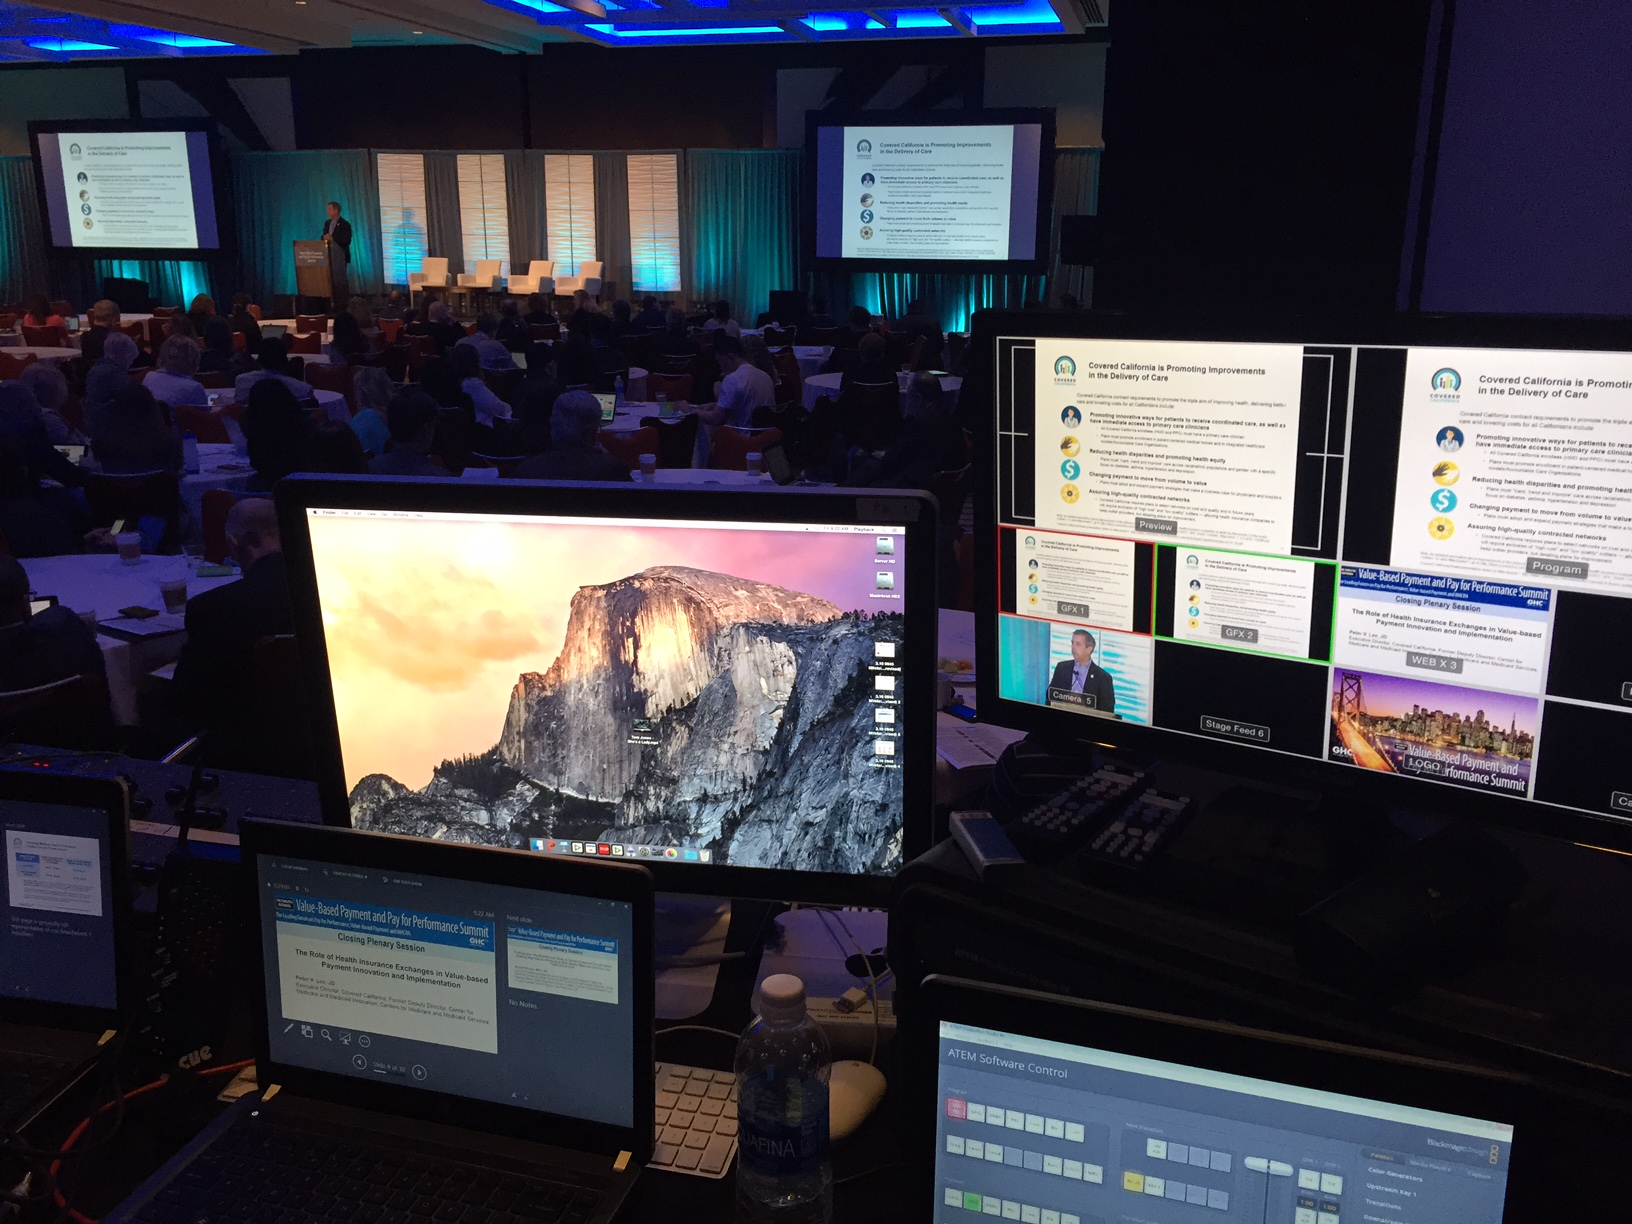 Health Care Conference Live Webcasting in Los Angeles